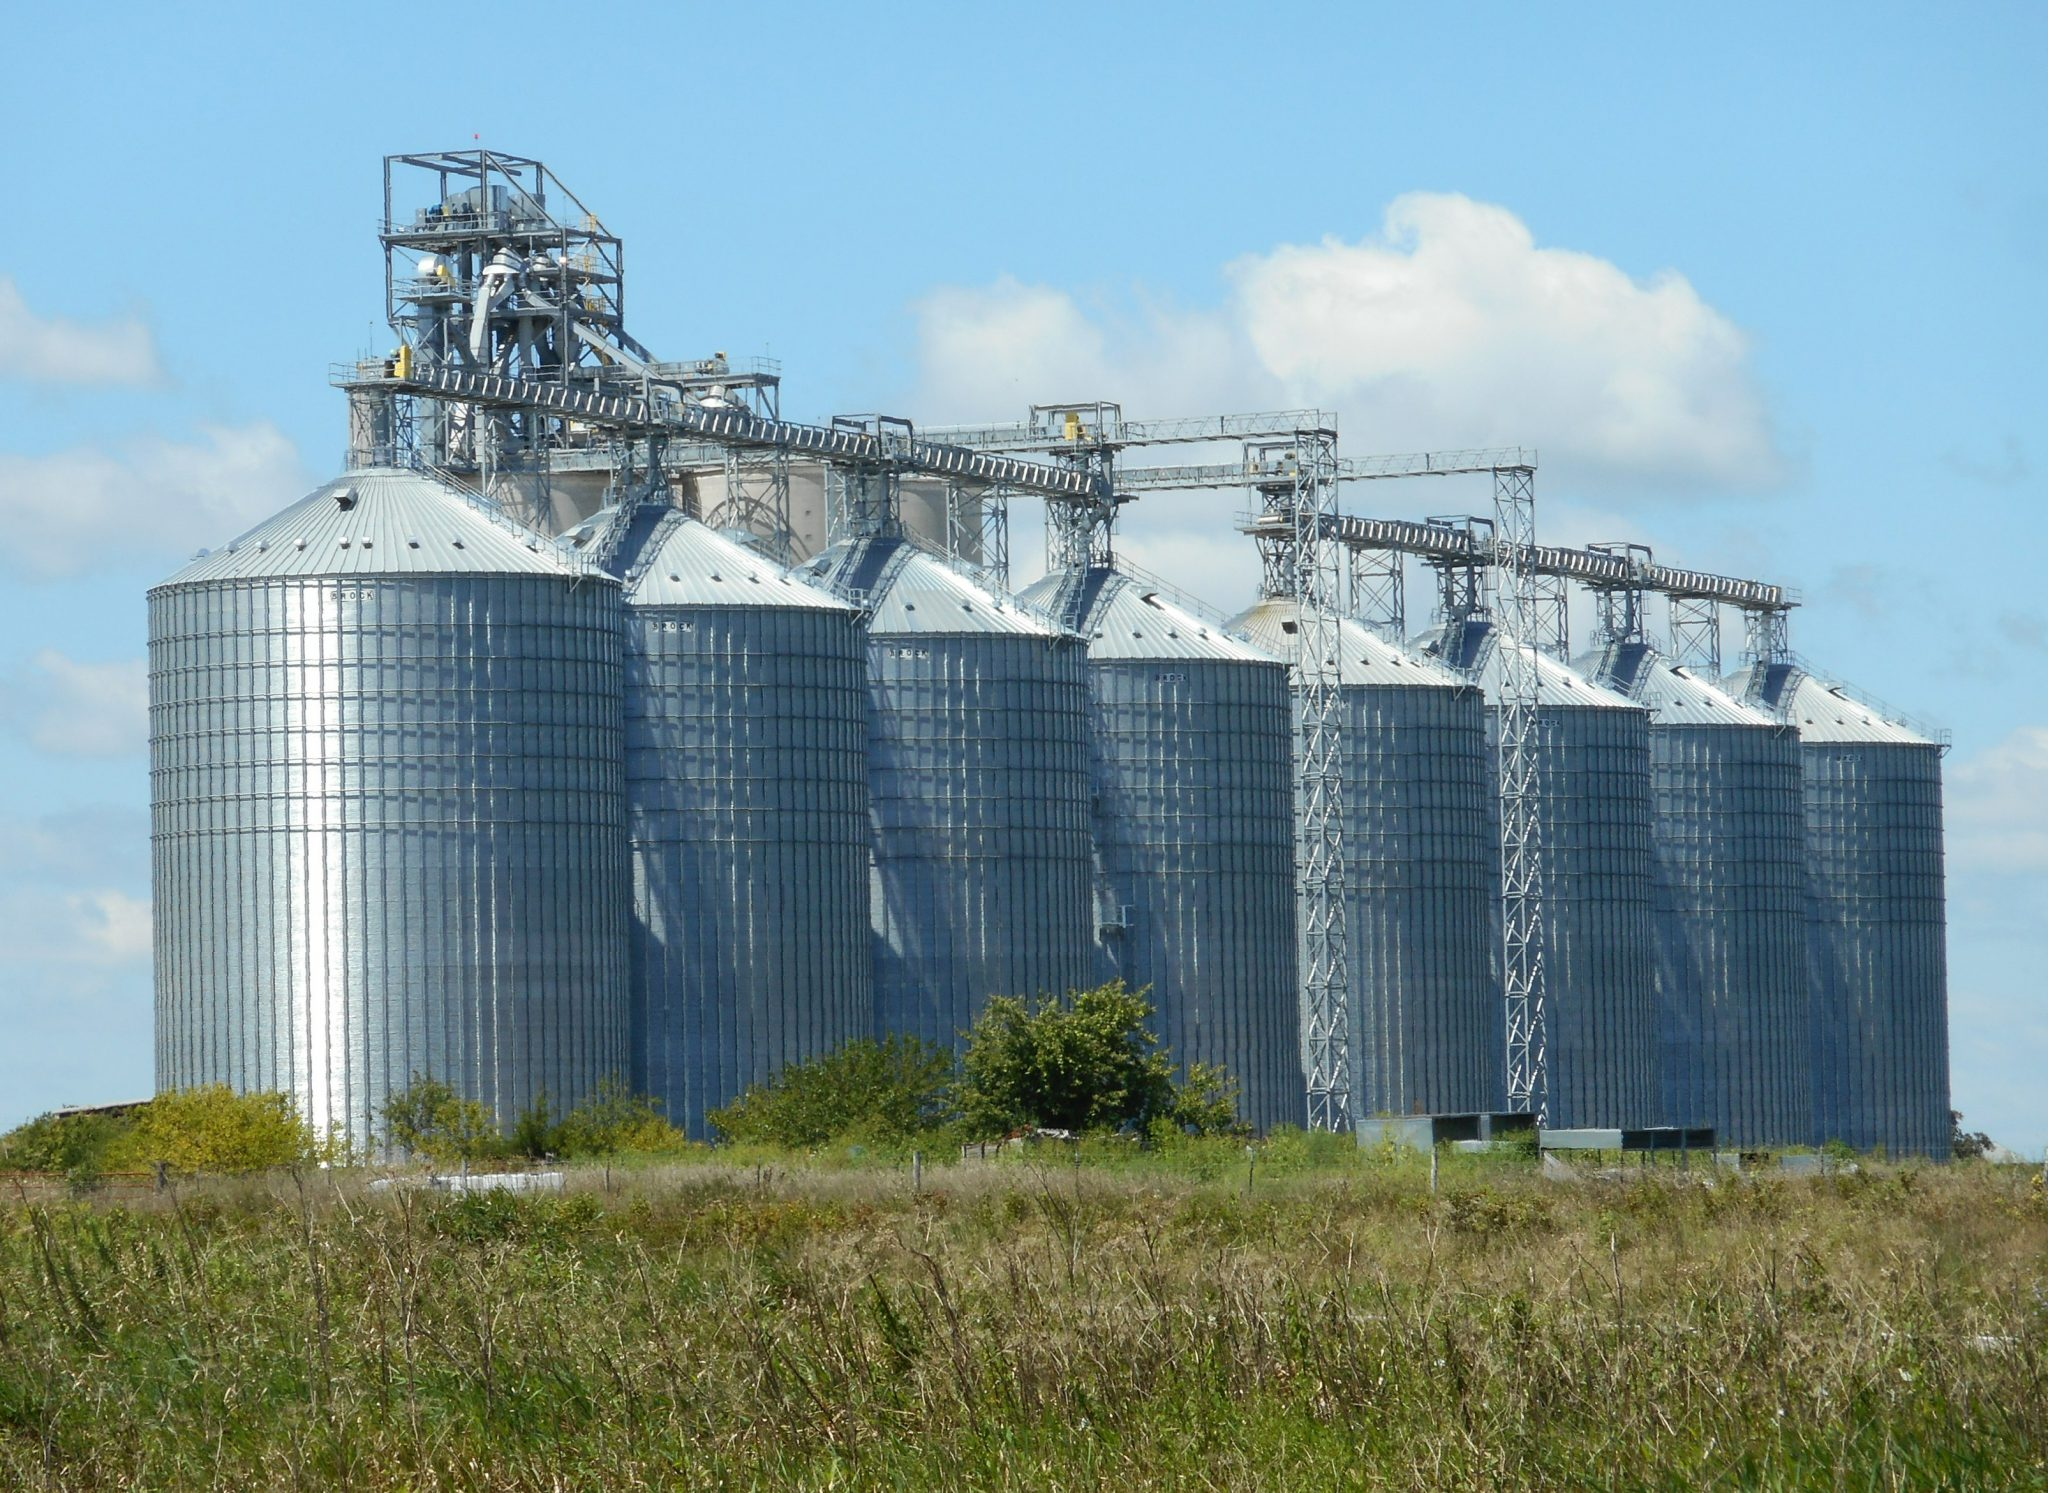 Grain silos on a field.